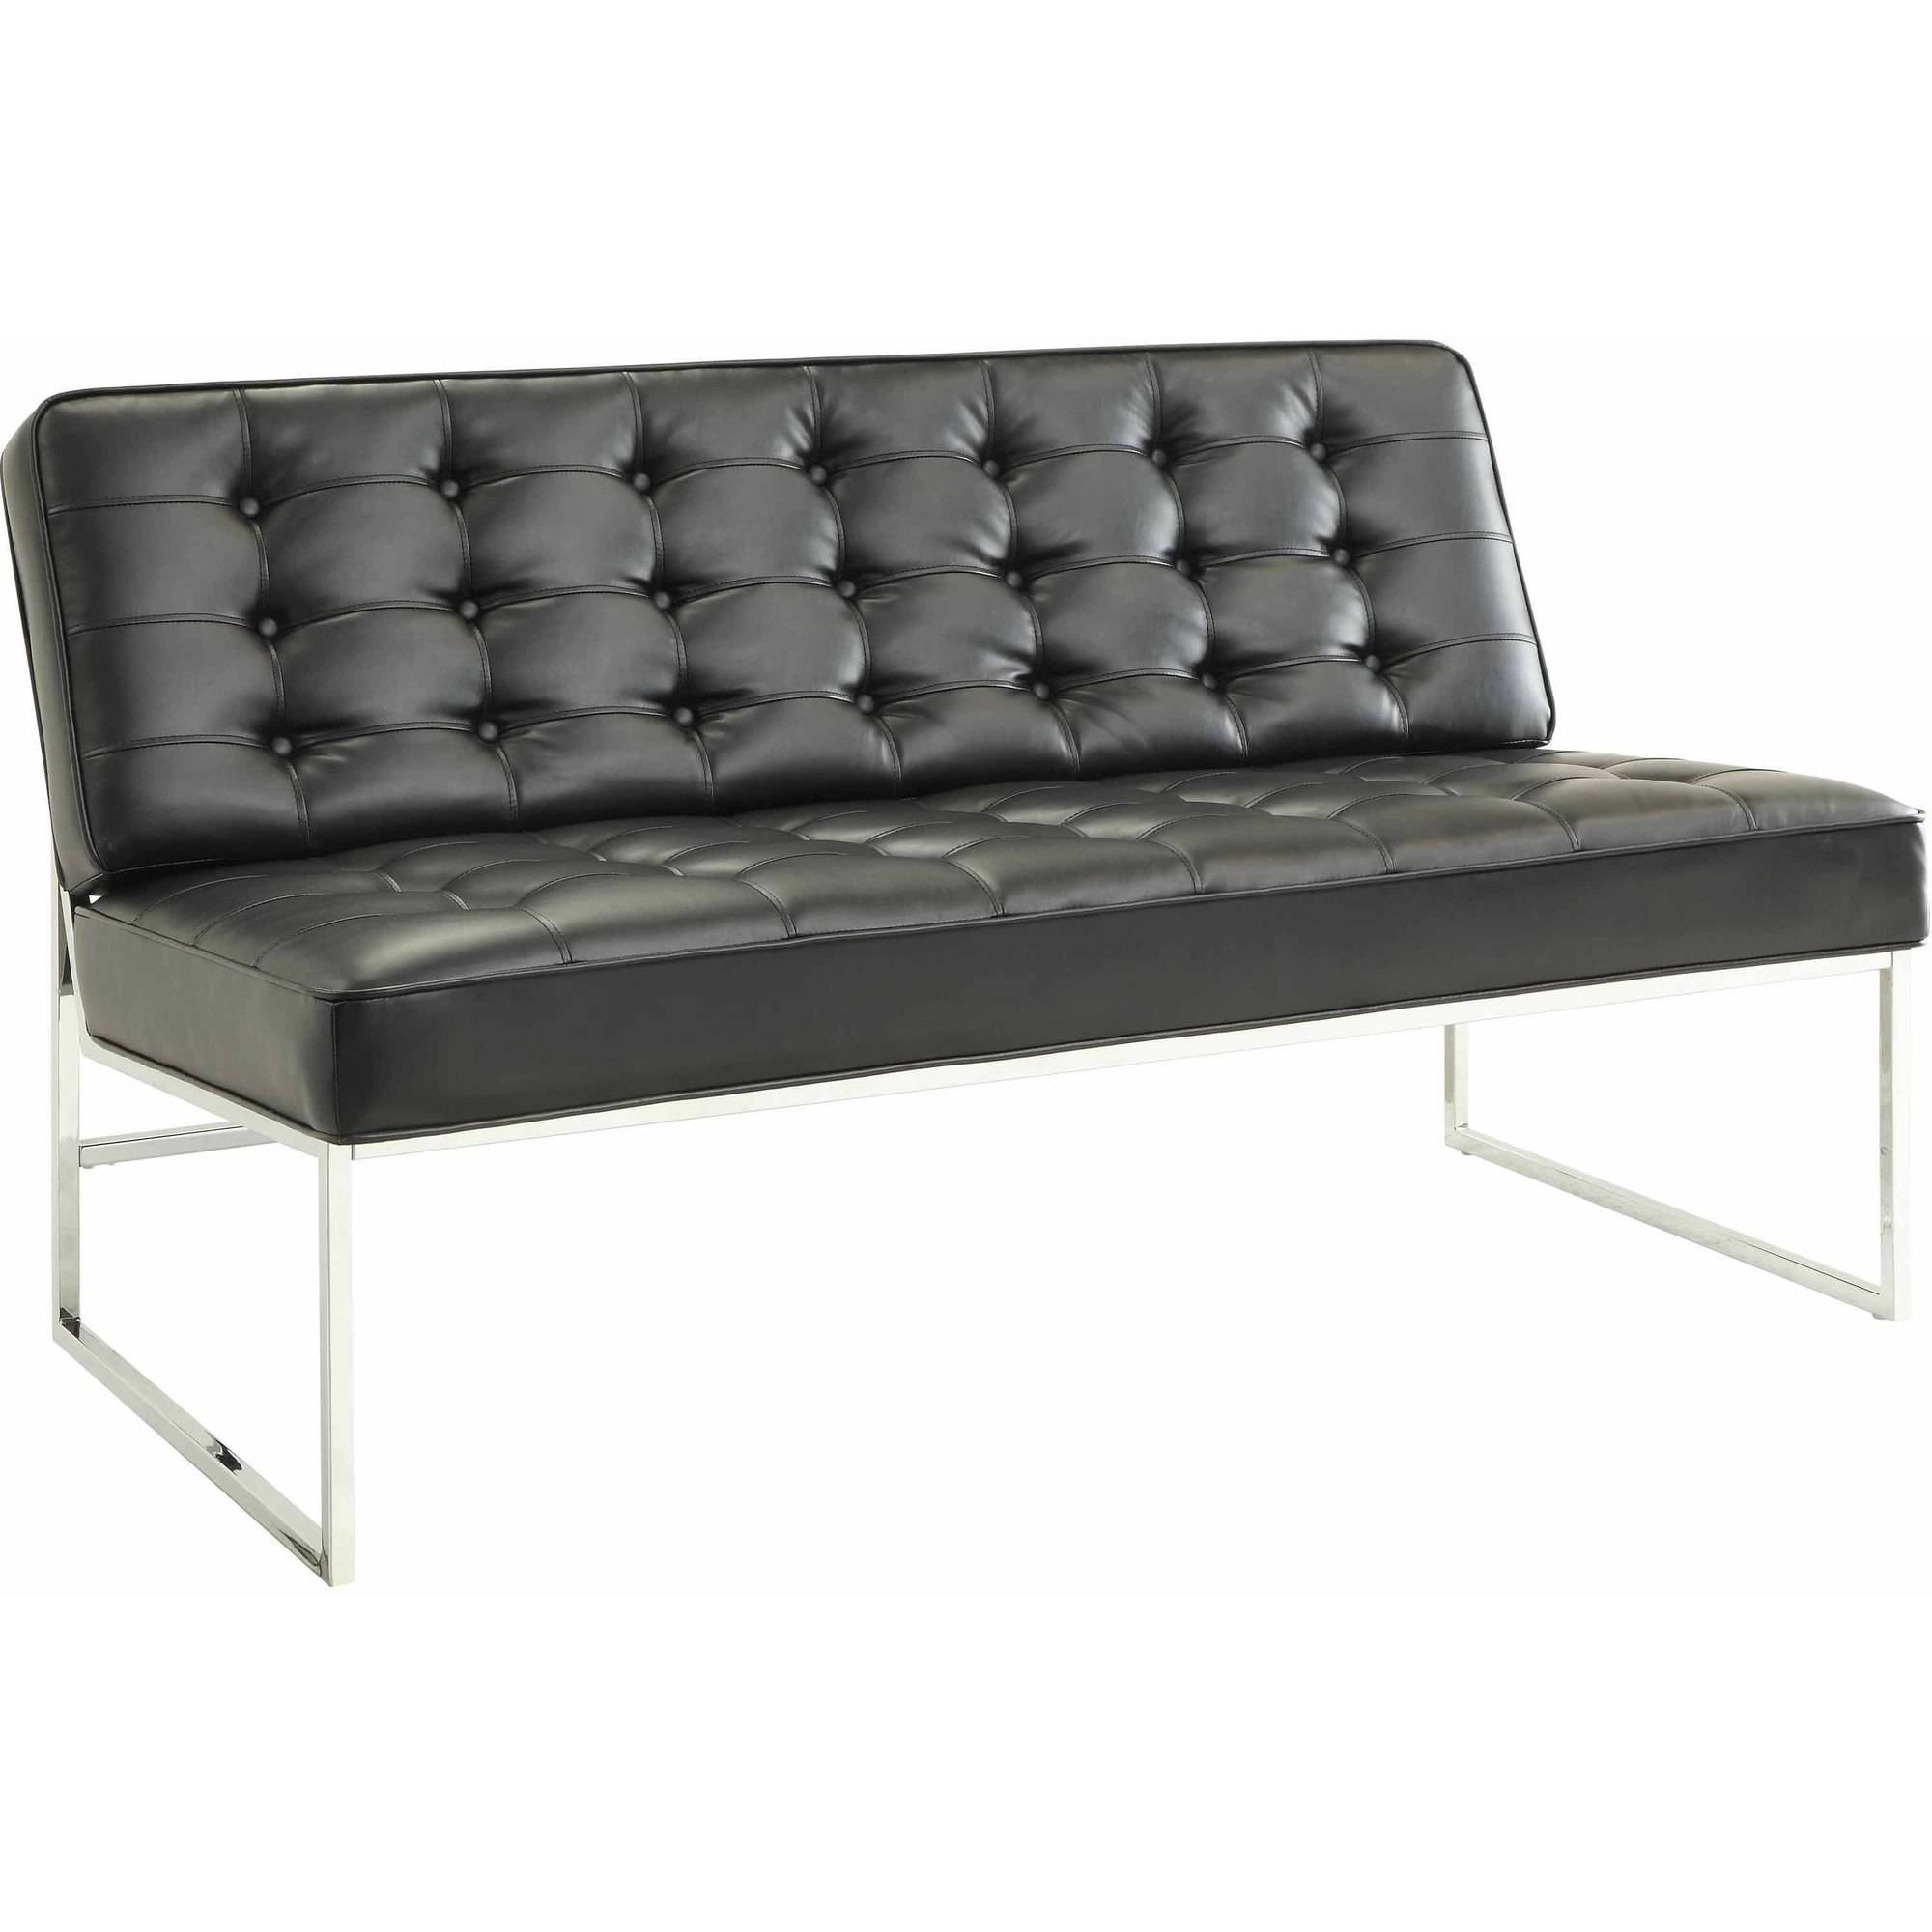 "Anthony 57"" Wide Loveseat with Chrome Base"